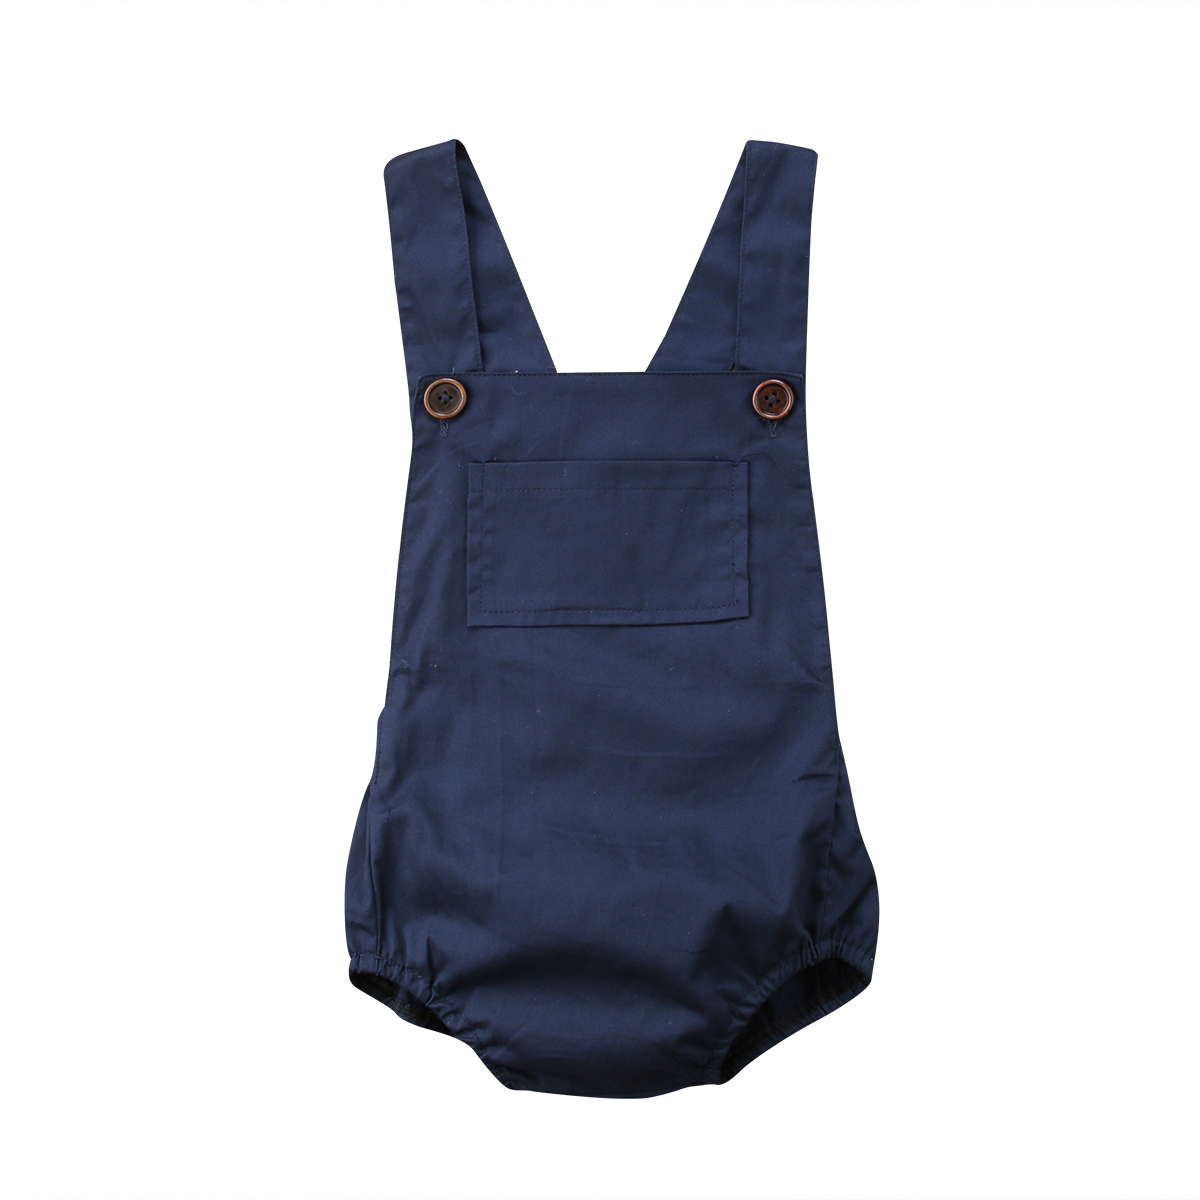 Navy Blue Newborn Infant Baby Boy Girl Sleeveless Back Cross Solid Color Summer   Romper   Jumpsuit Outfits Baby Clothes